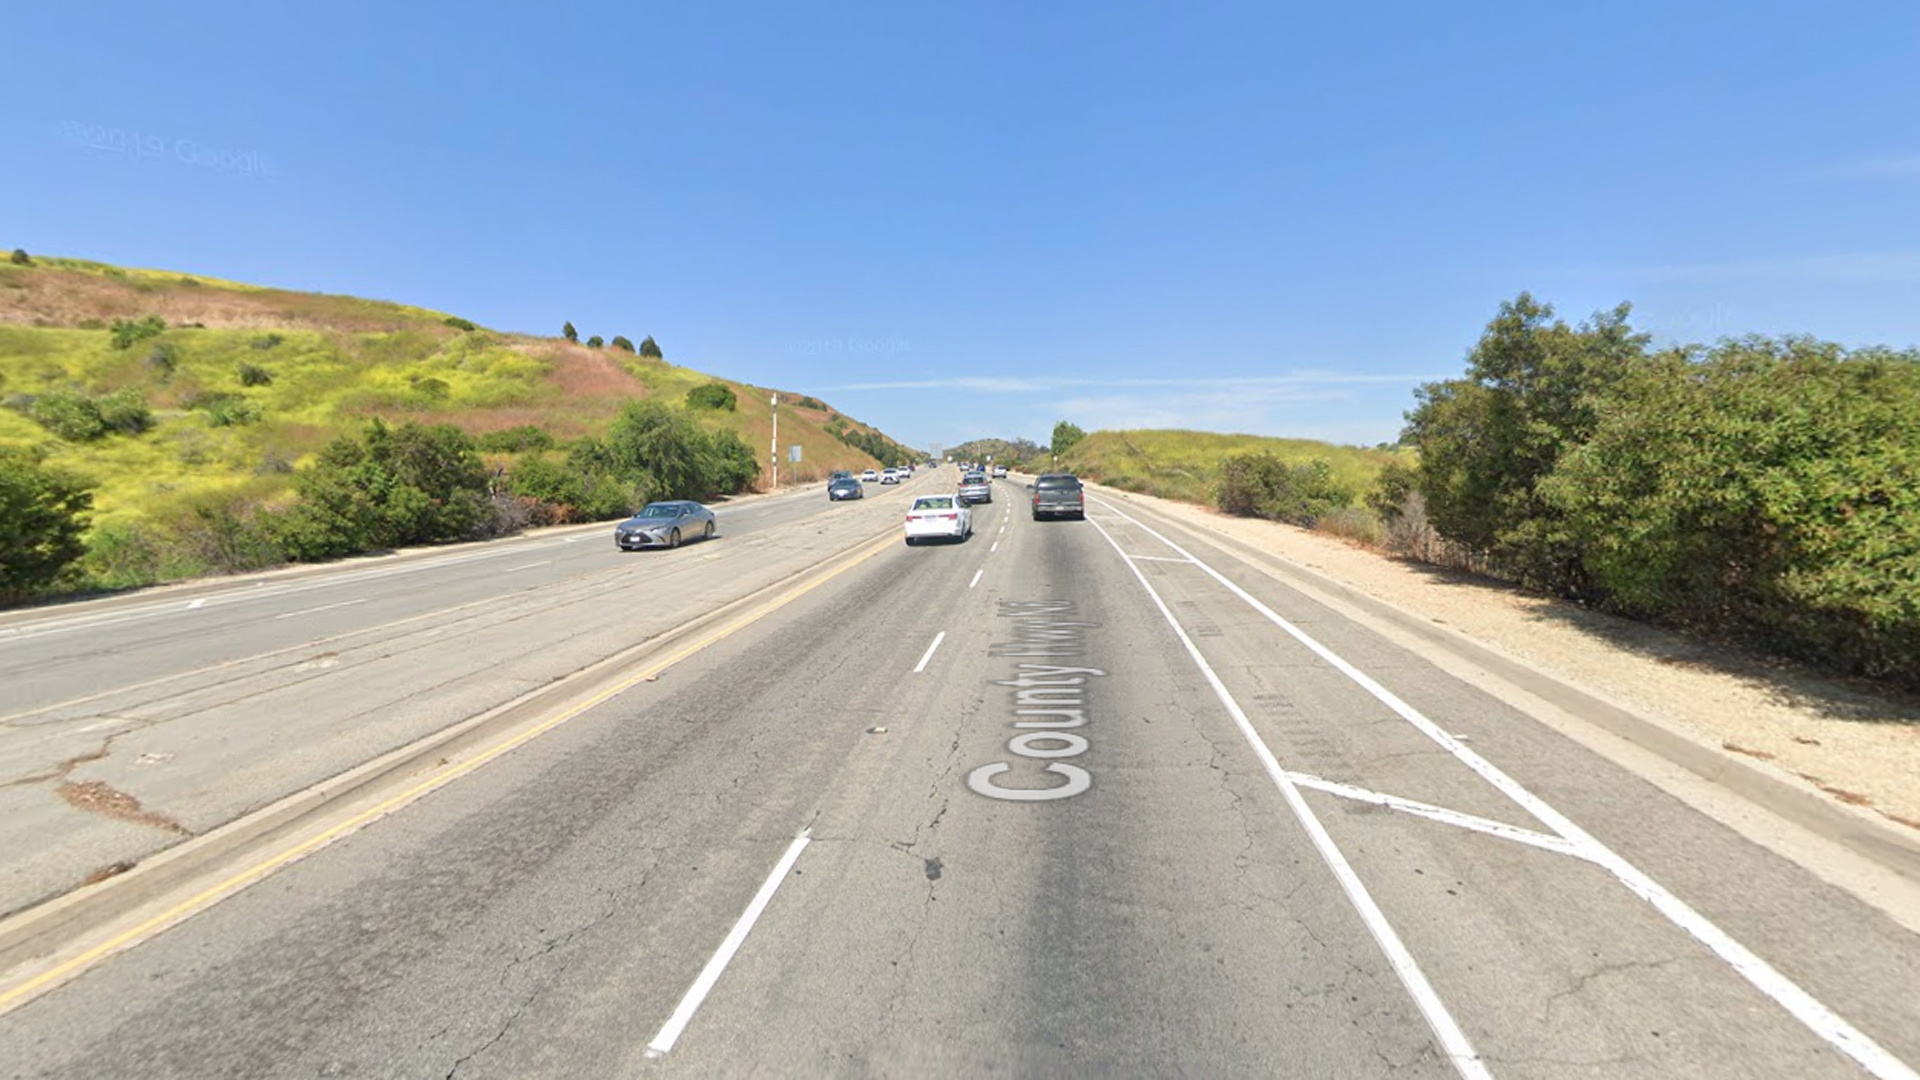 The 7700 block of Colima Road in Whittier, as viewed in a Google Street View image.